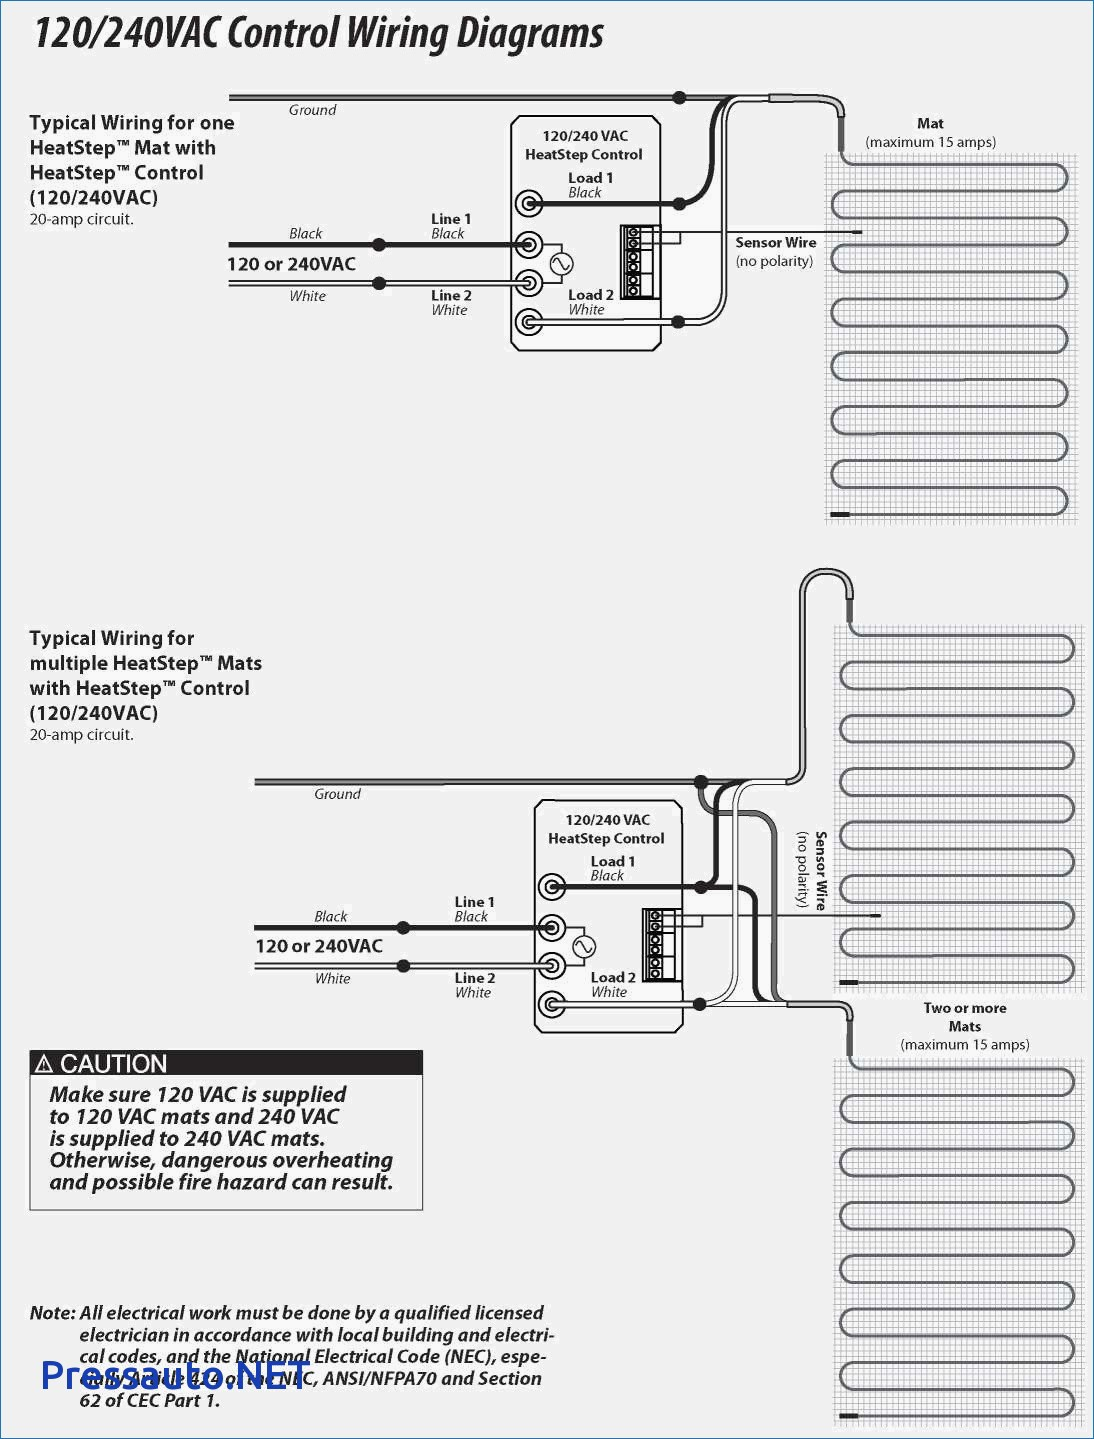 robertshaw thermostat wiring diagram Download-Safety Mat Wiring Diagram Elegant Amazing Robertshaw thermostat Wiring Diagram Contemporary 5-i